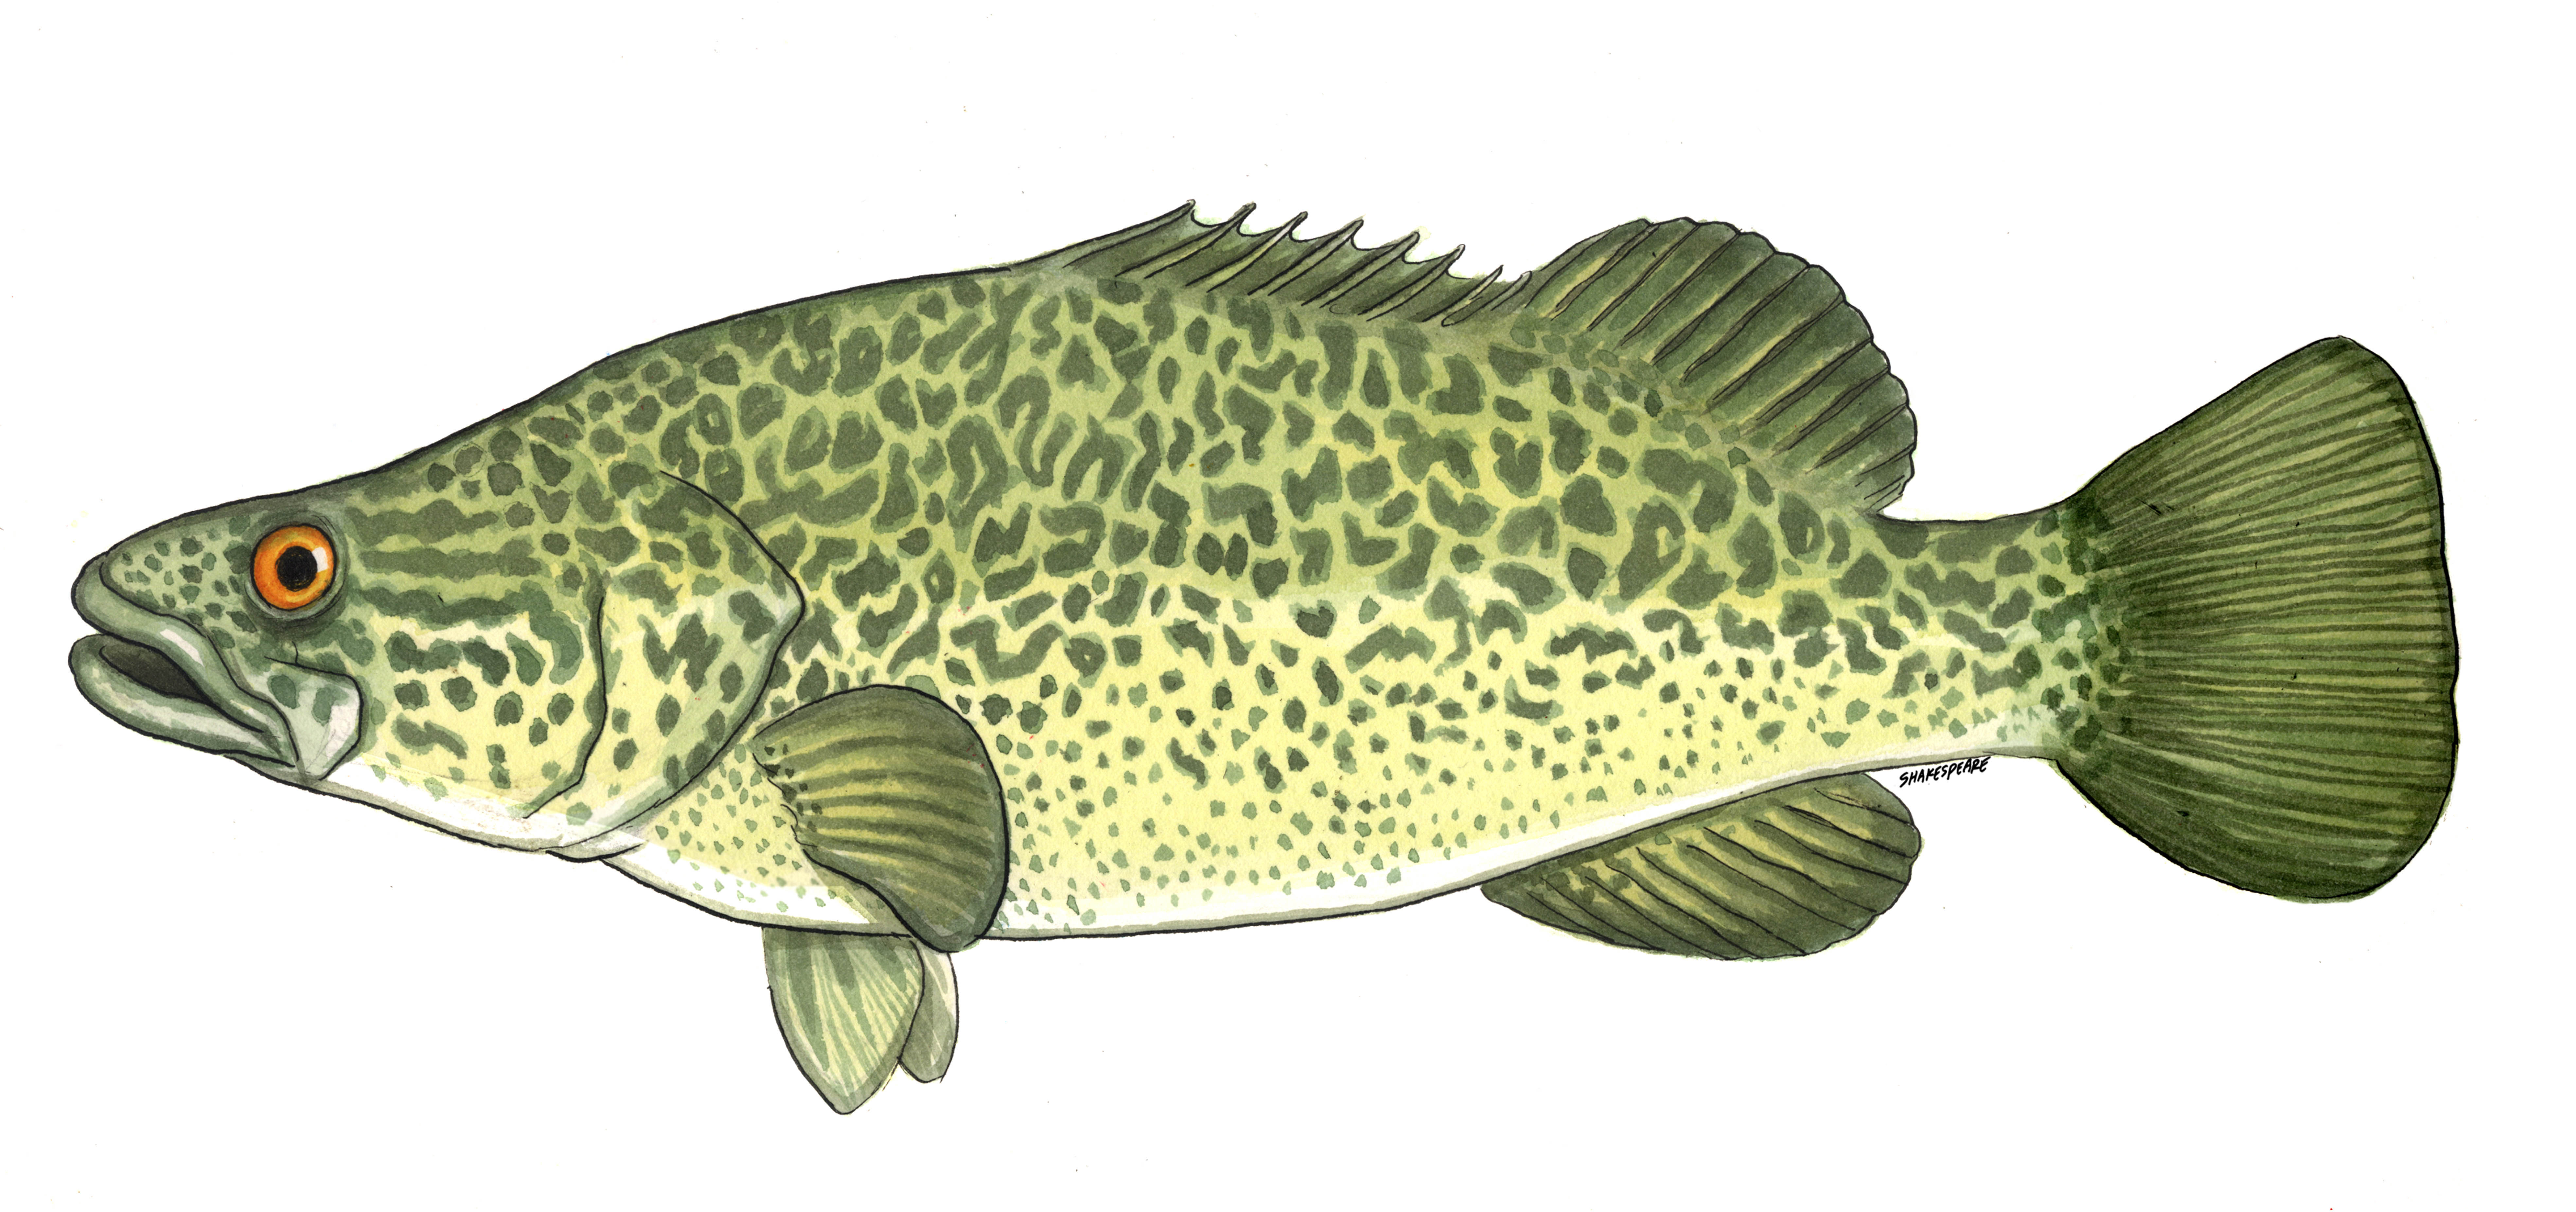 Cod Drawing | galleryhip.com - The Hippest Galleries!